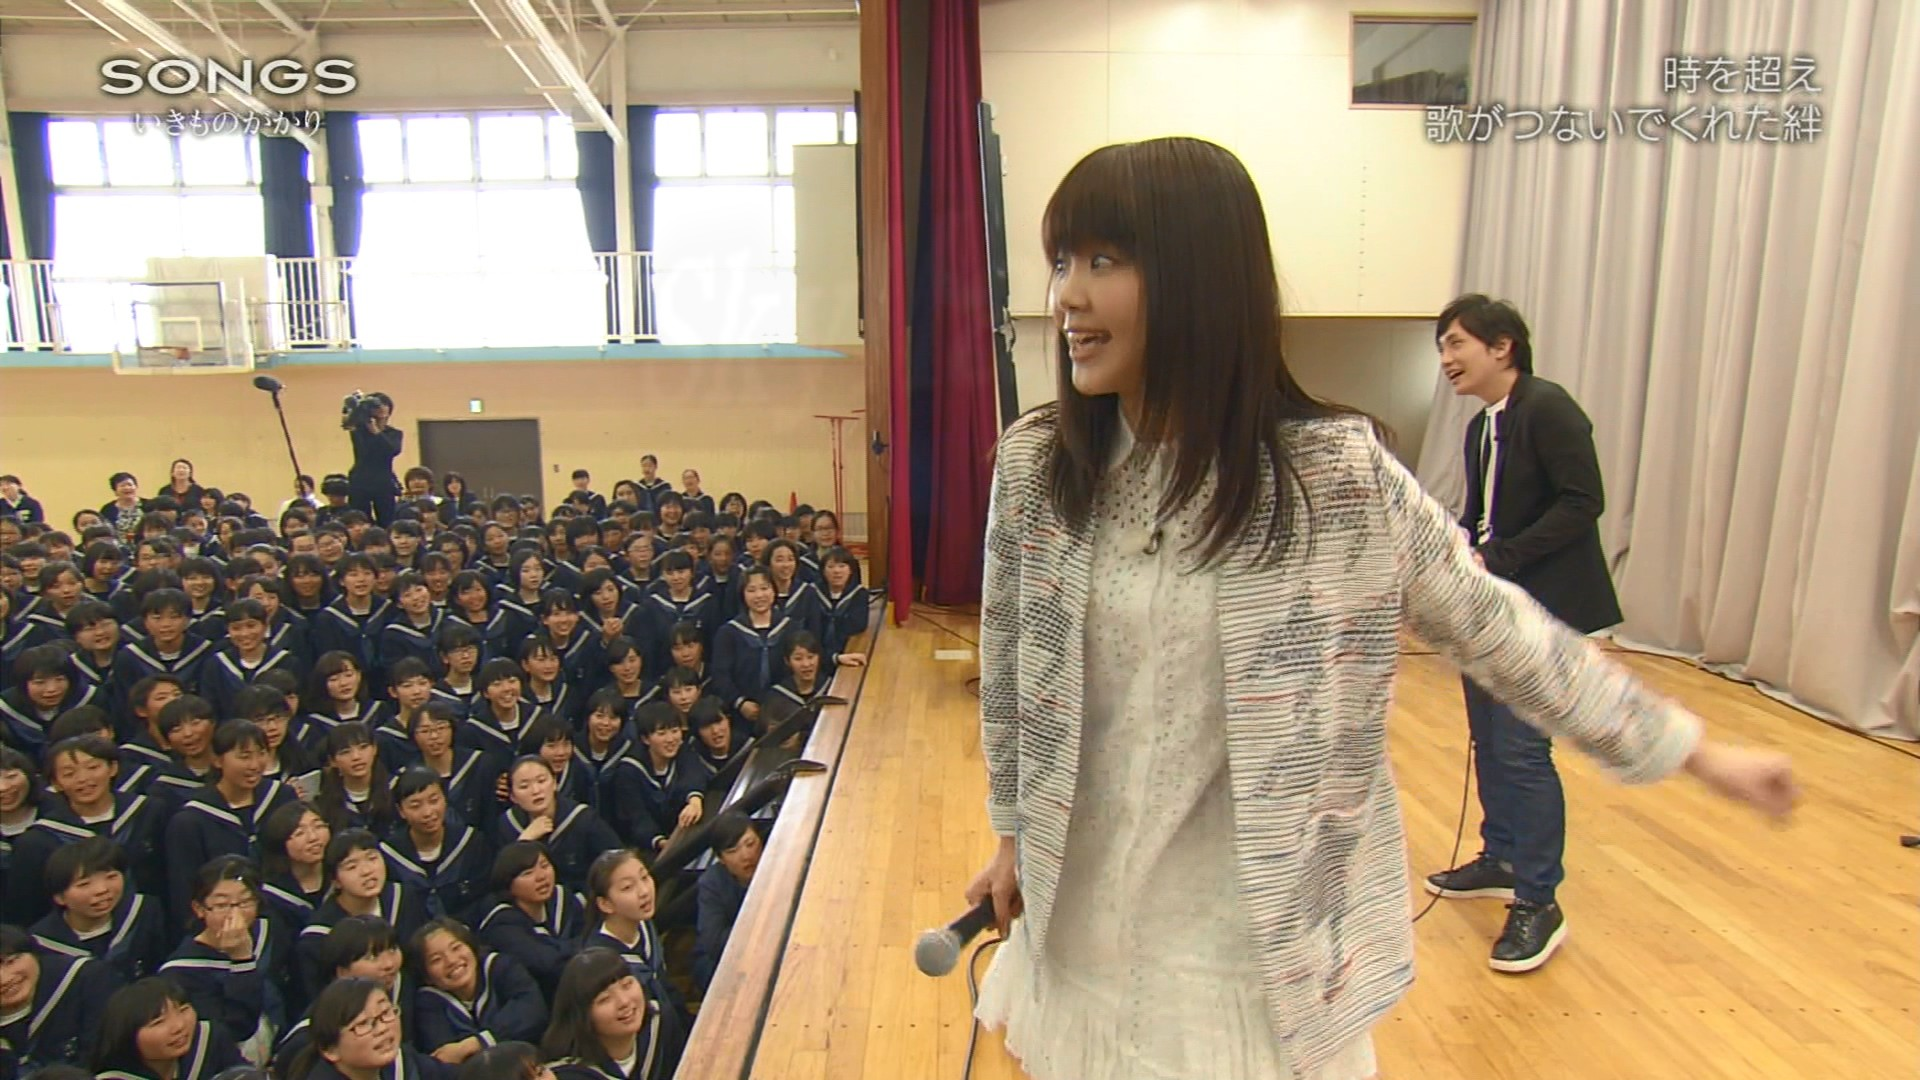 2016.04.28 全場(SONGS).ts_20160428_225907.612